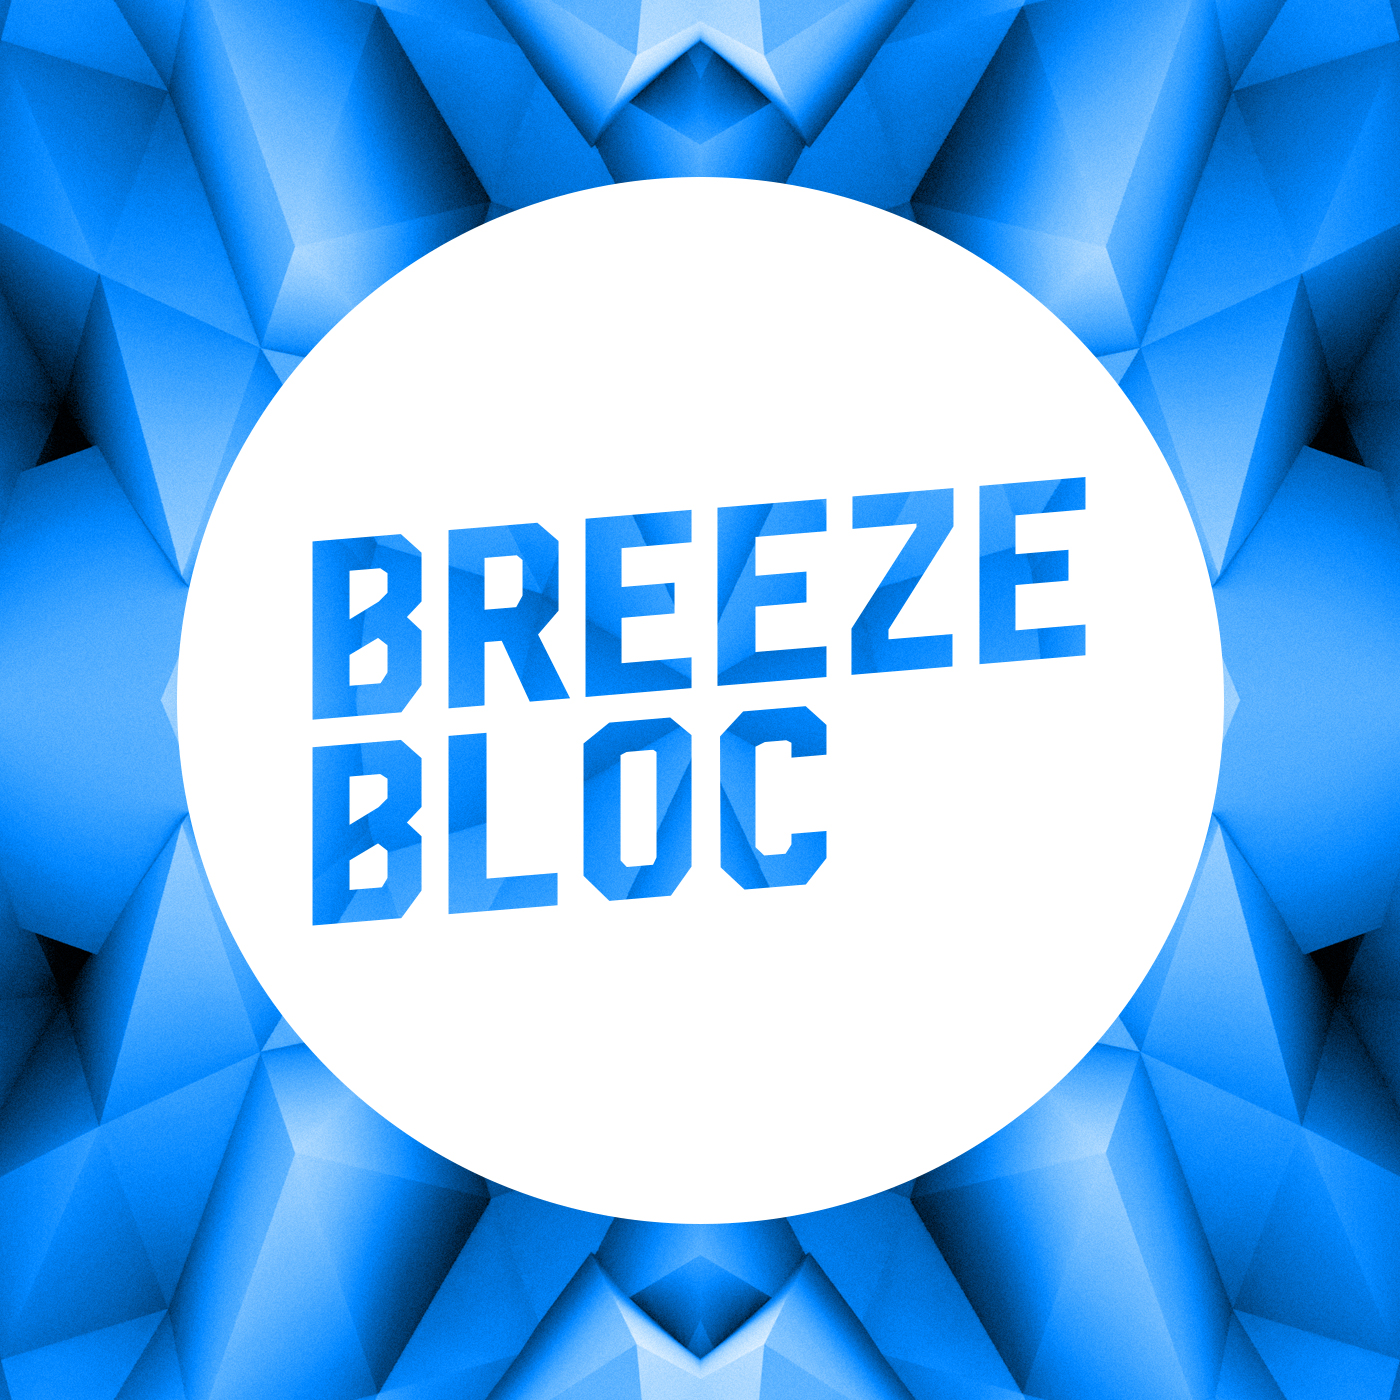 BREEZE BLOc